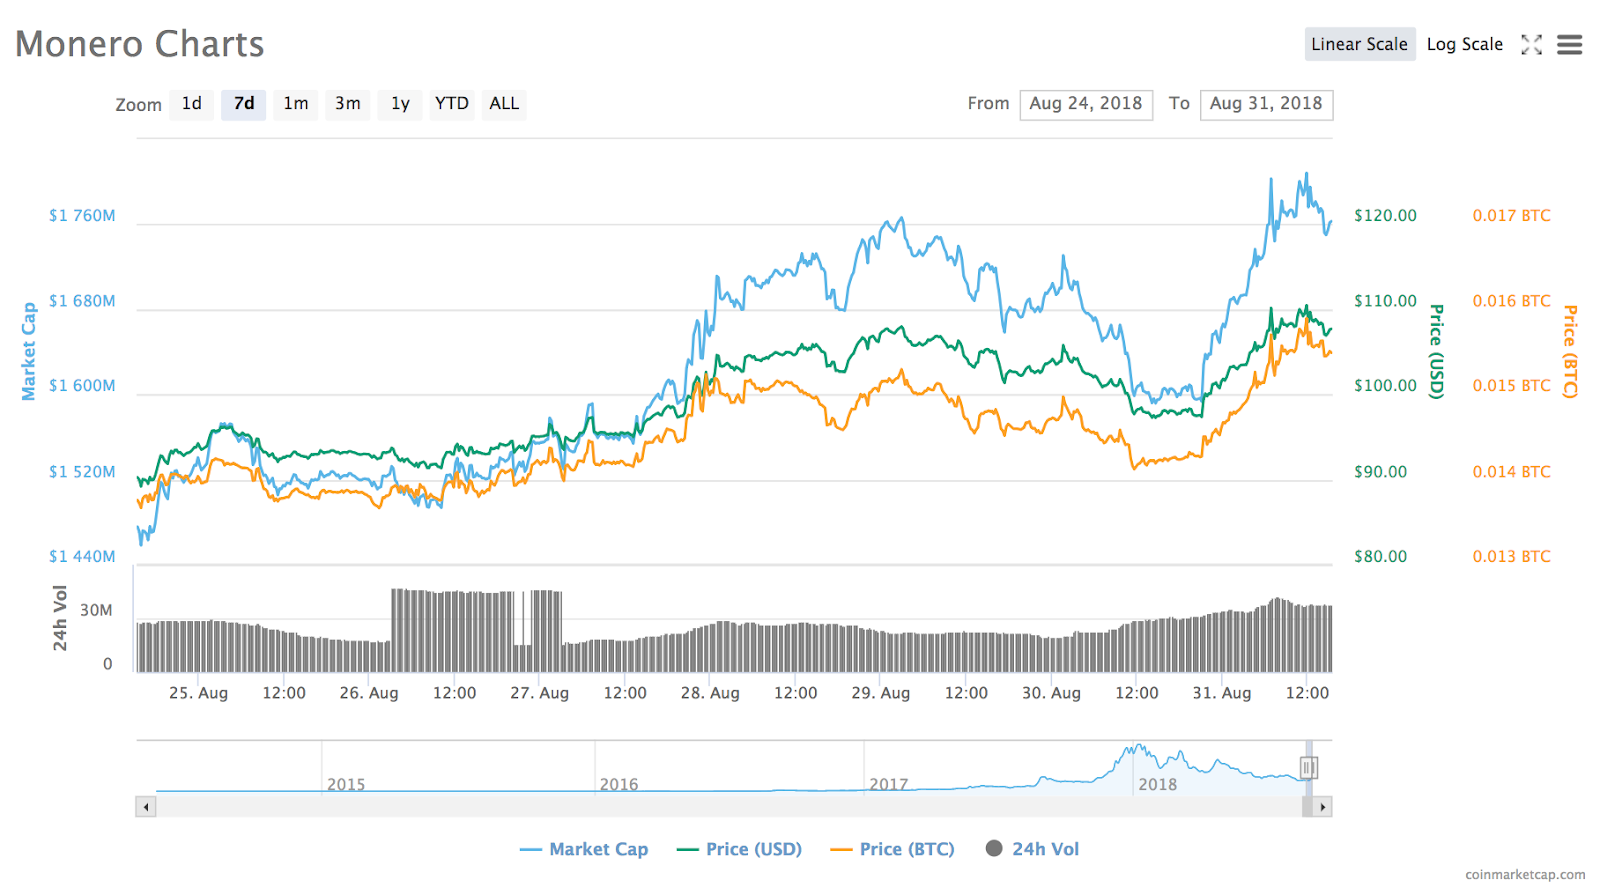 Monero's 7-day price chart